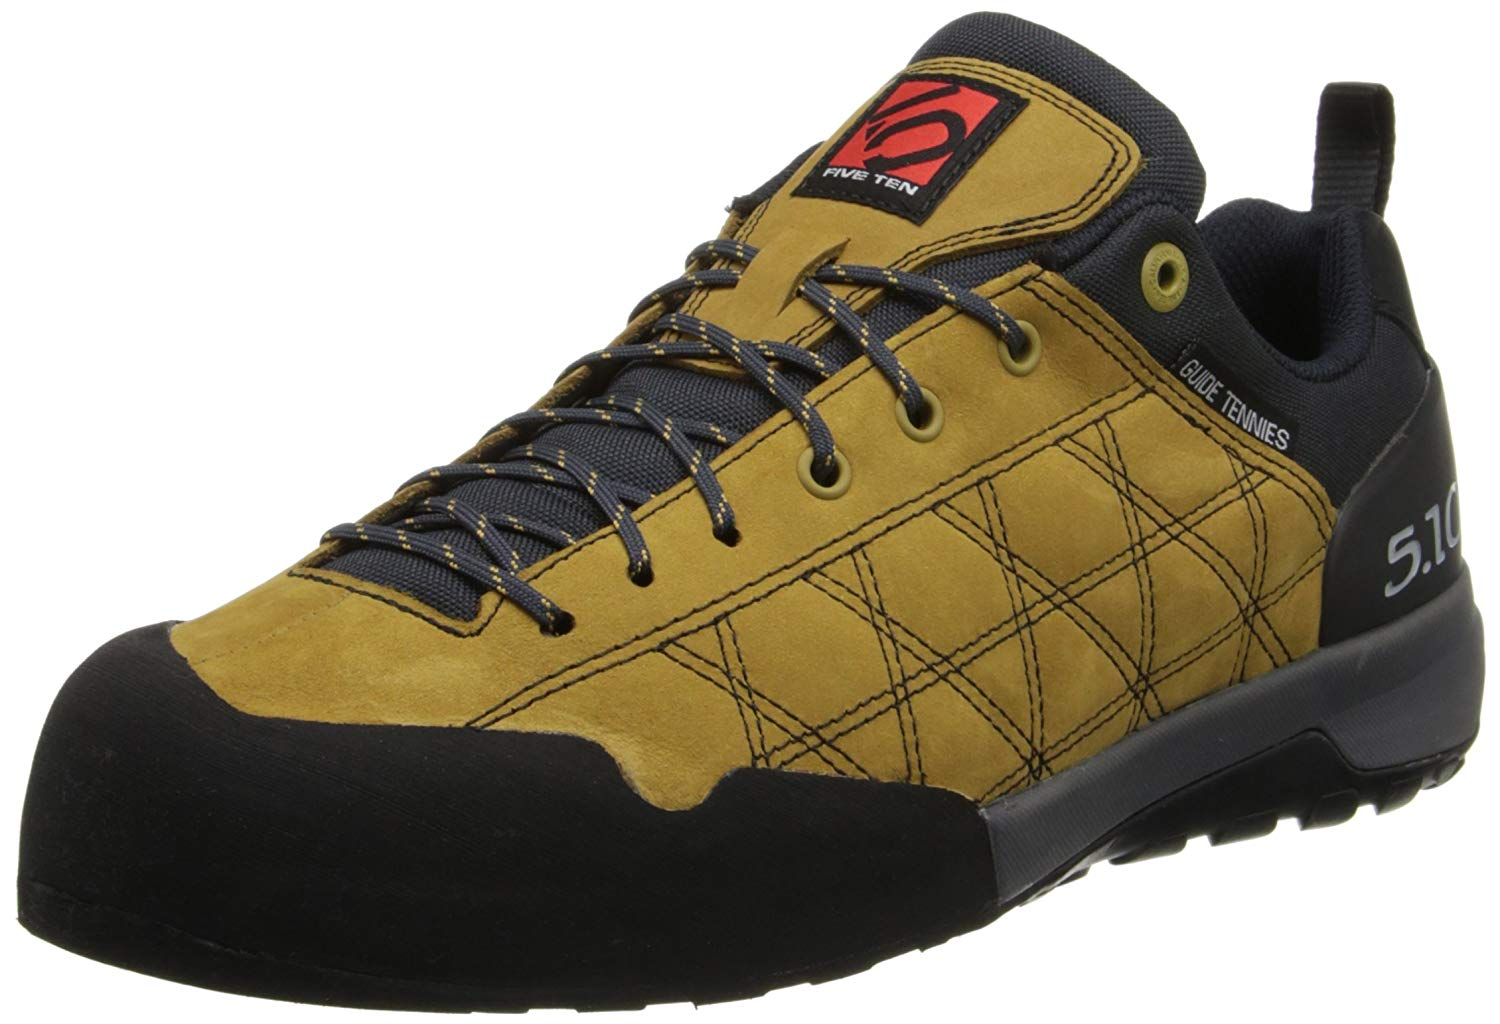 Best Approach Shoes 2020|The Climbing Guy